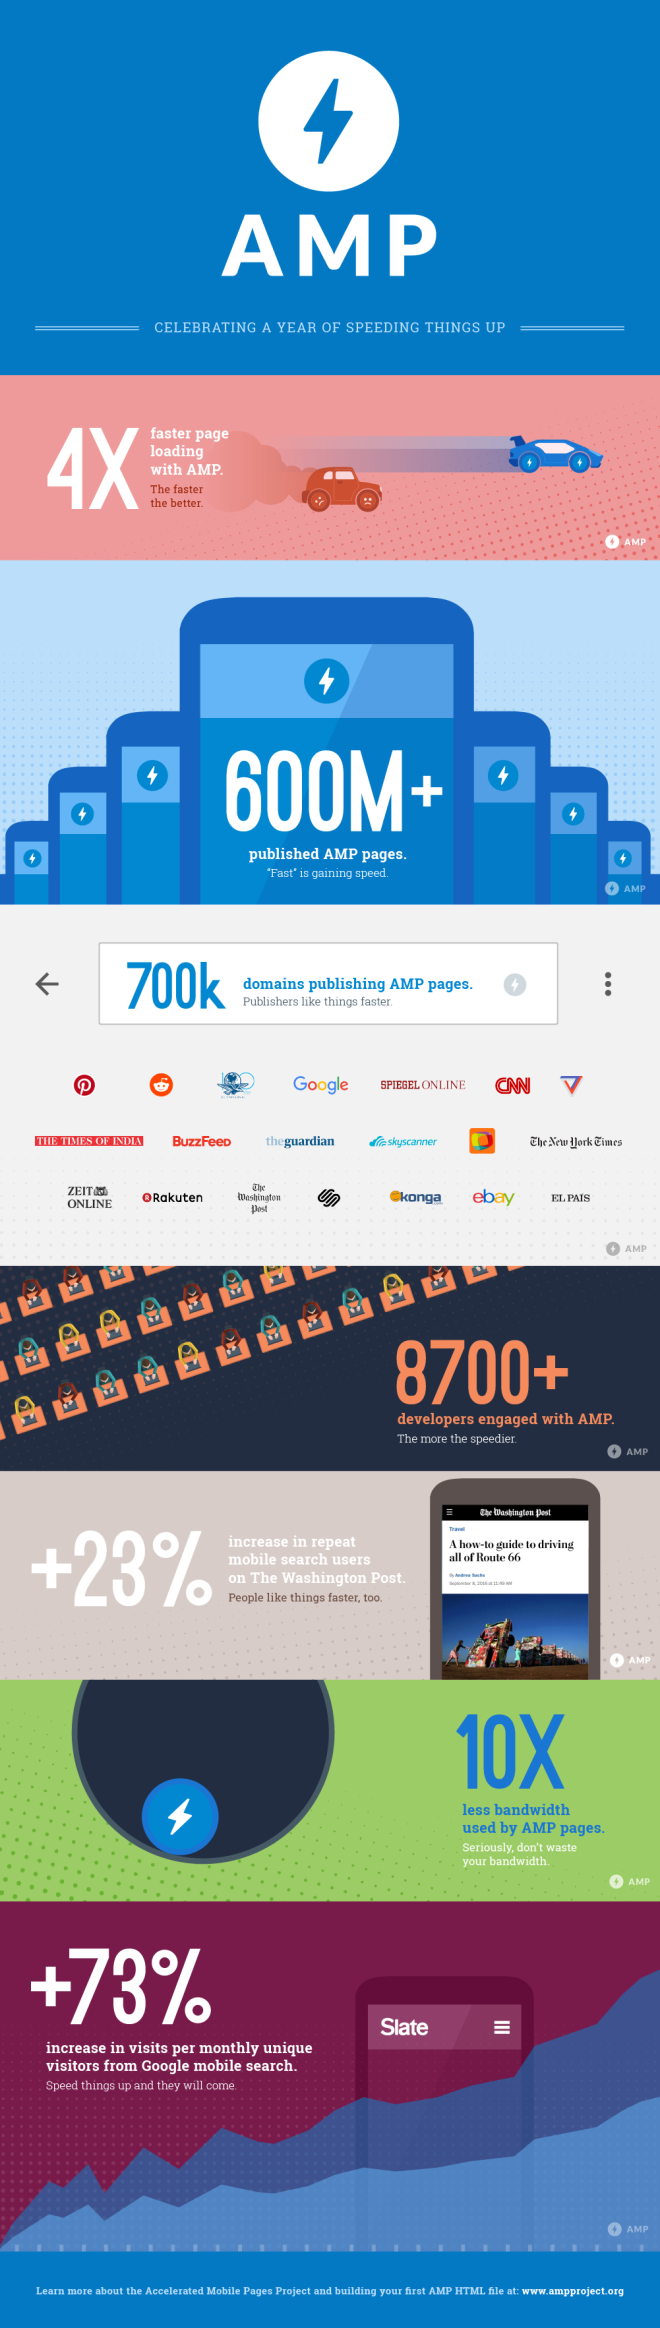 infographie amp